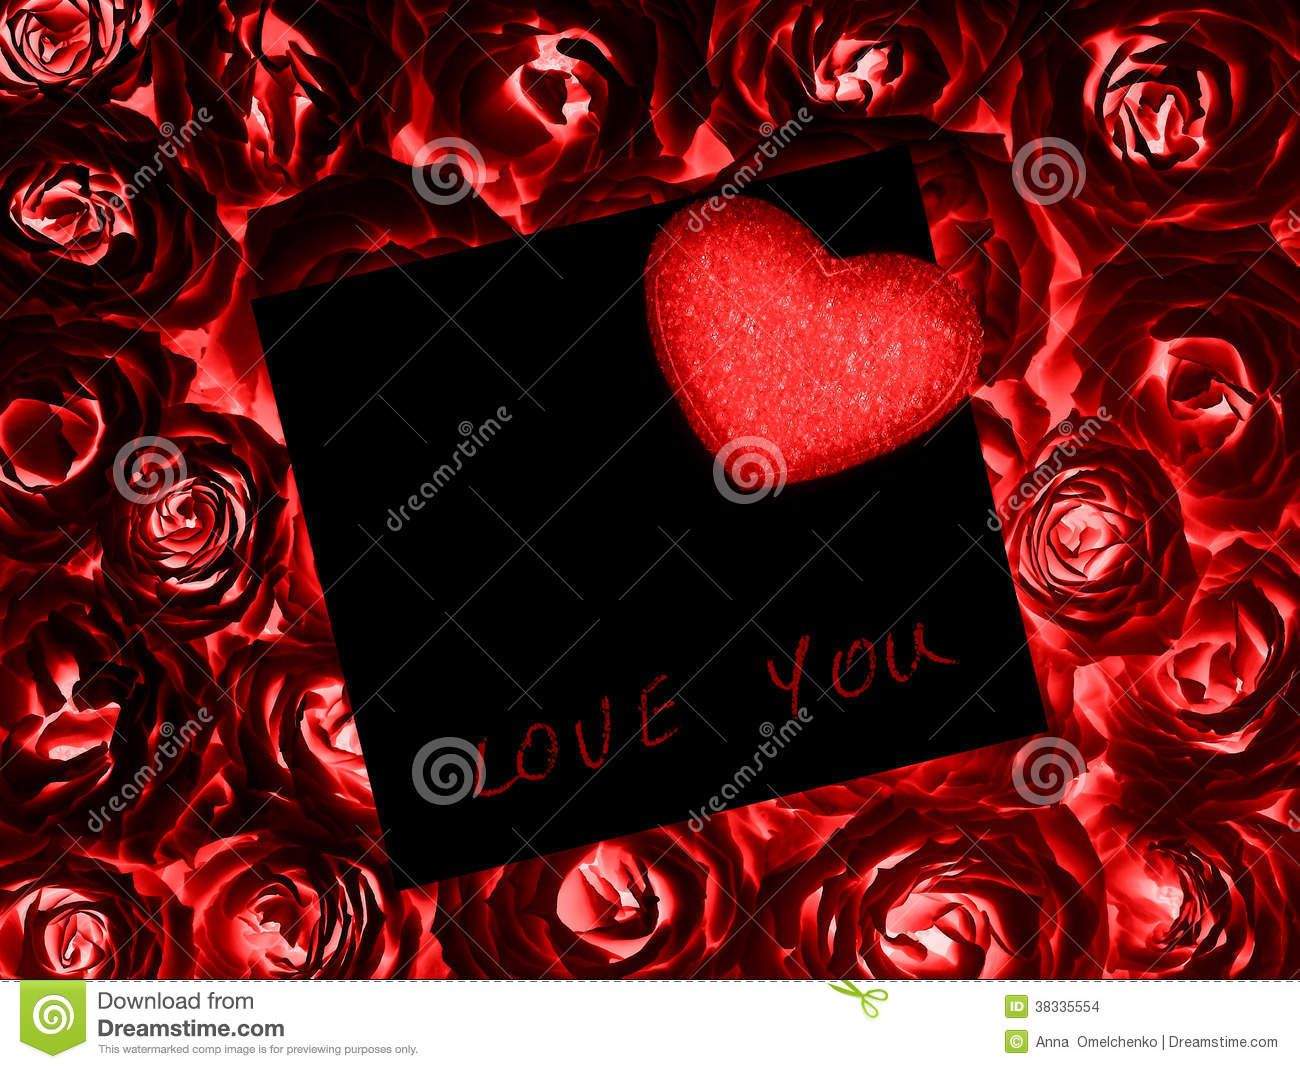 Beautiful Roses With Gift Card & Heart Stock Photo - Image